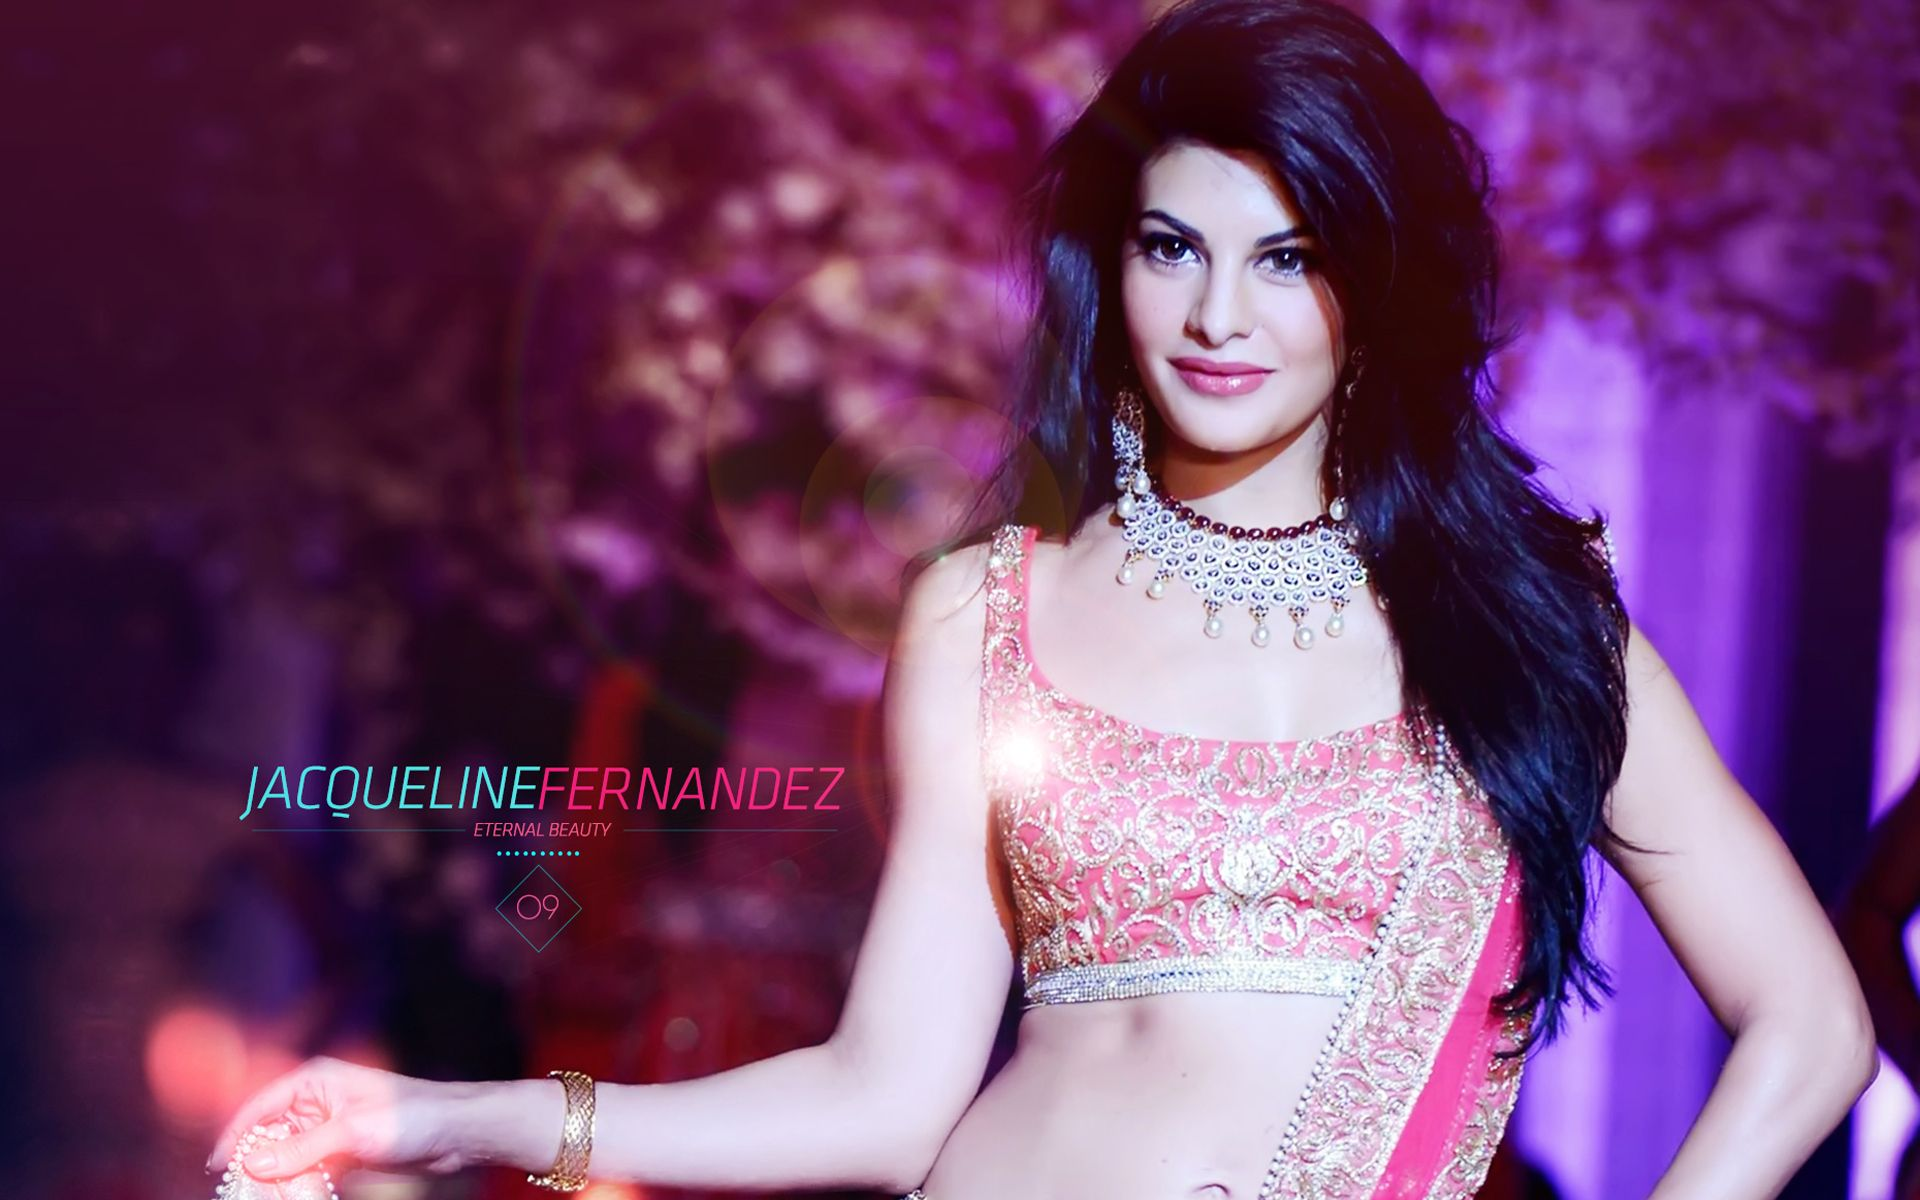 Free Bollywood Wallpapers Download 42 Wallpapers: Jacqueline Fernandez Hot Hd Wallpaper Download Jacqueline